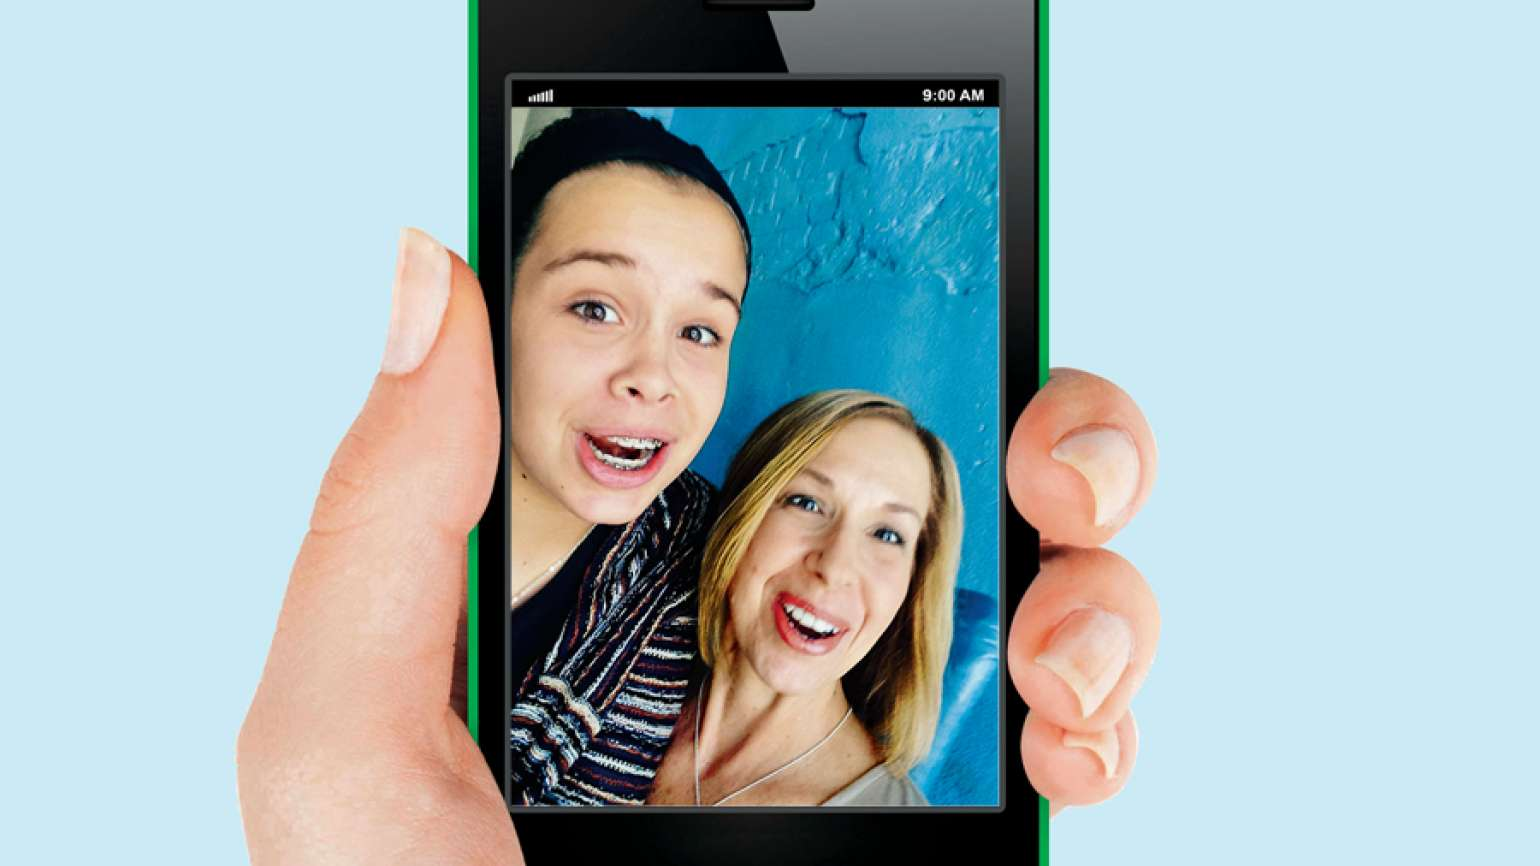 Stephanie and Micah in a selfie on a smartphone screen